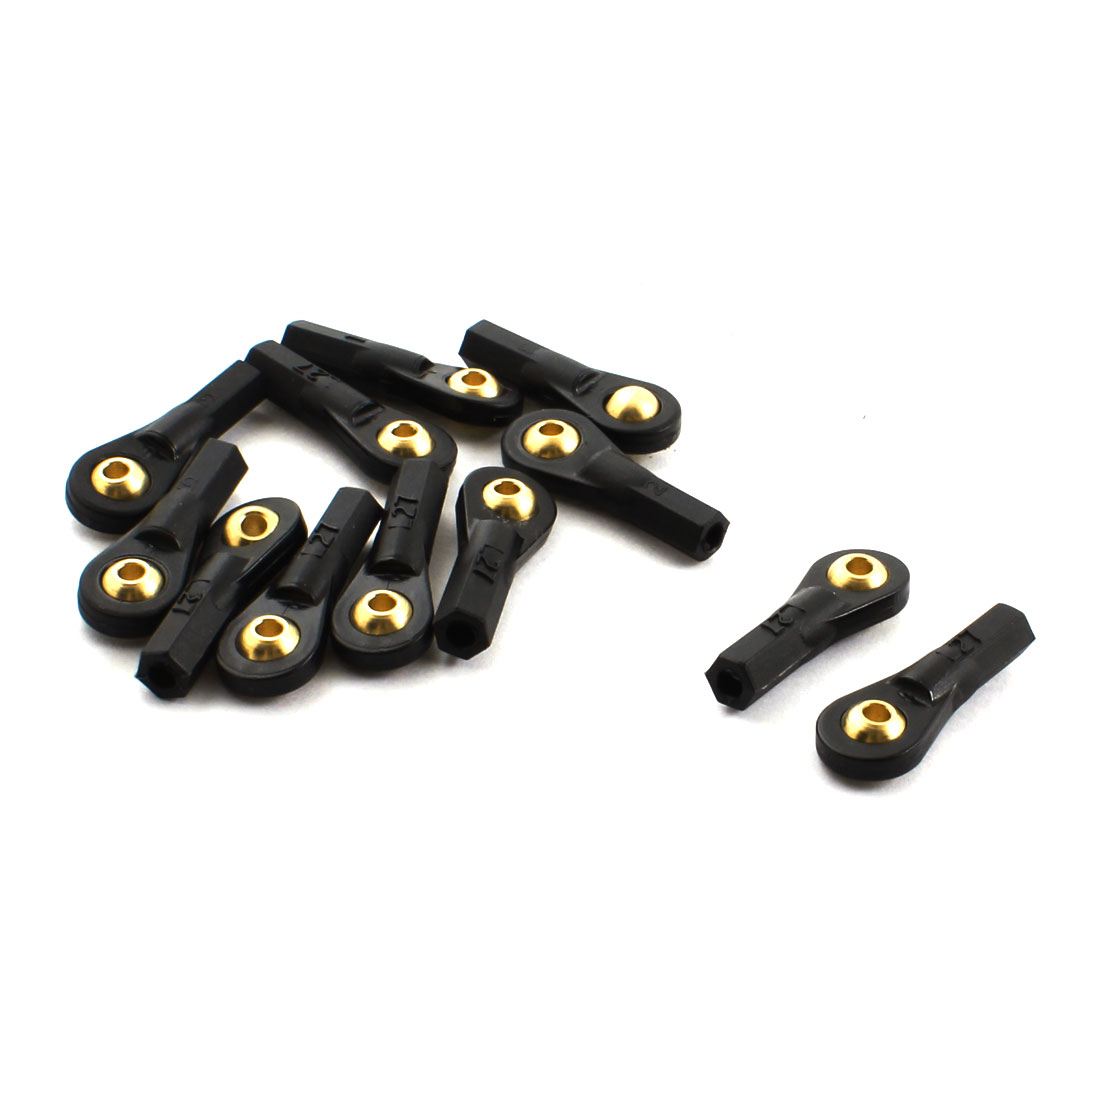 12Pcs 2.5X27X3mm Rod End Metal Ball Head Buckle Joints Black for RC Climbing Car